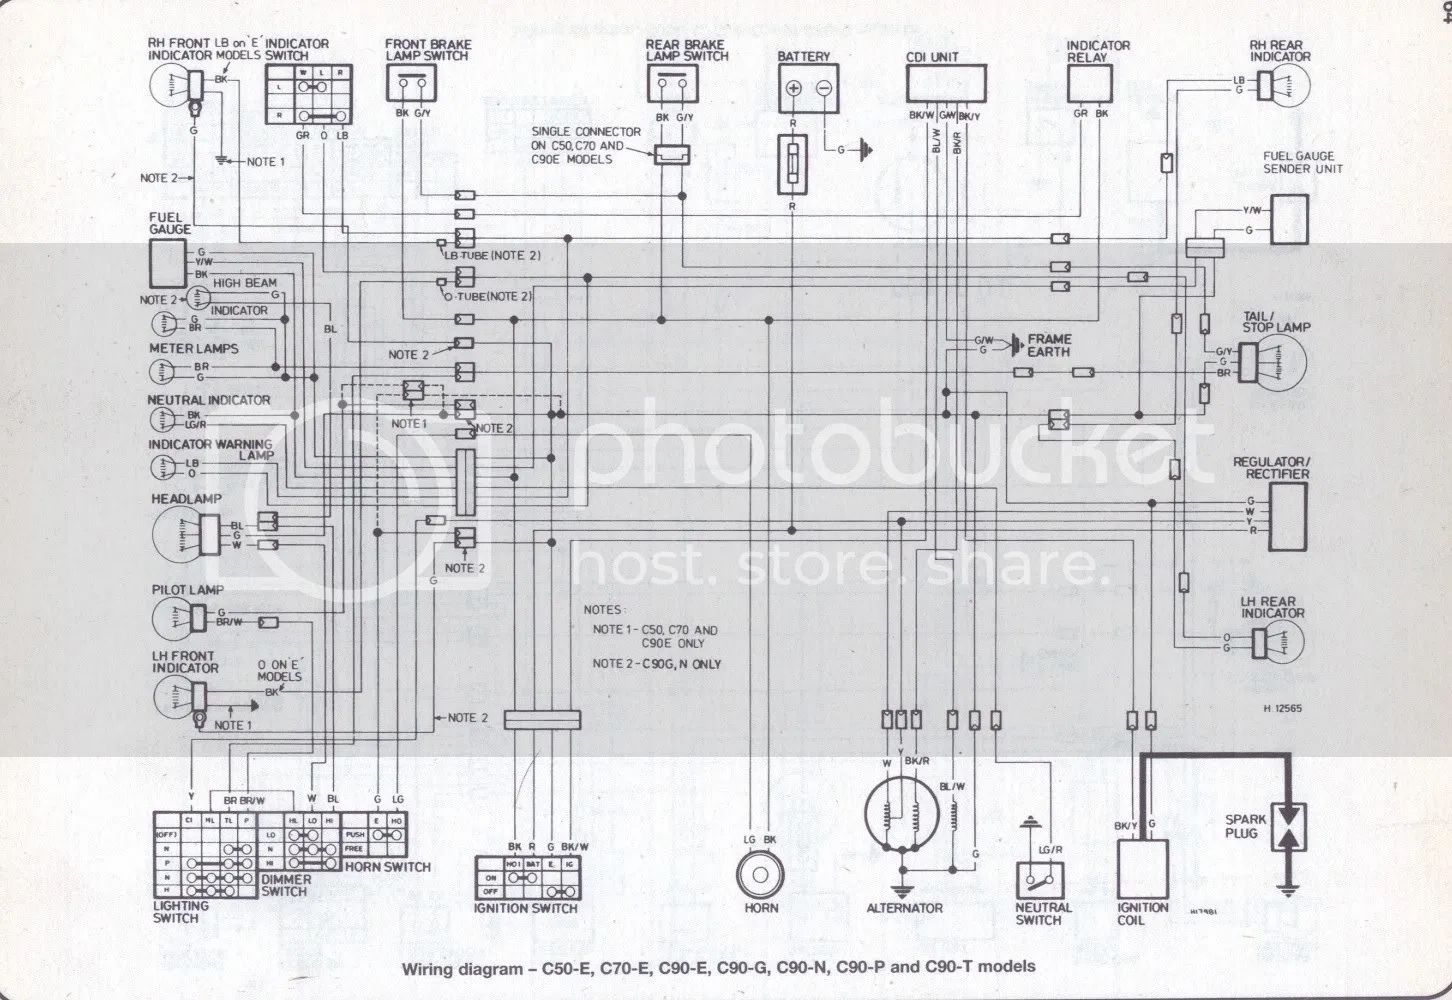 1981 honda xl500s wiring diagram on 81 sportster wiring diagram